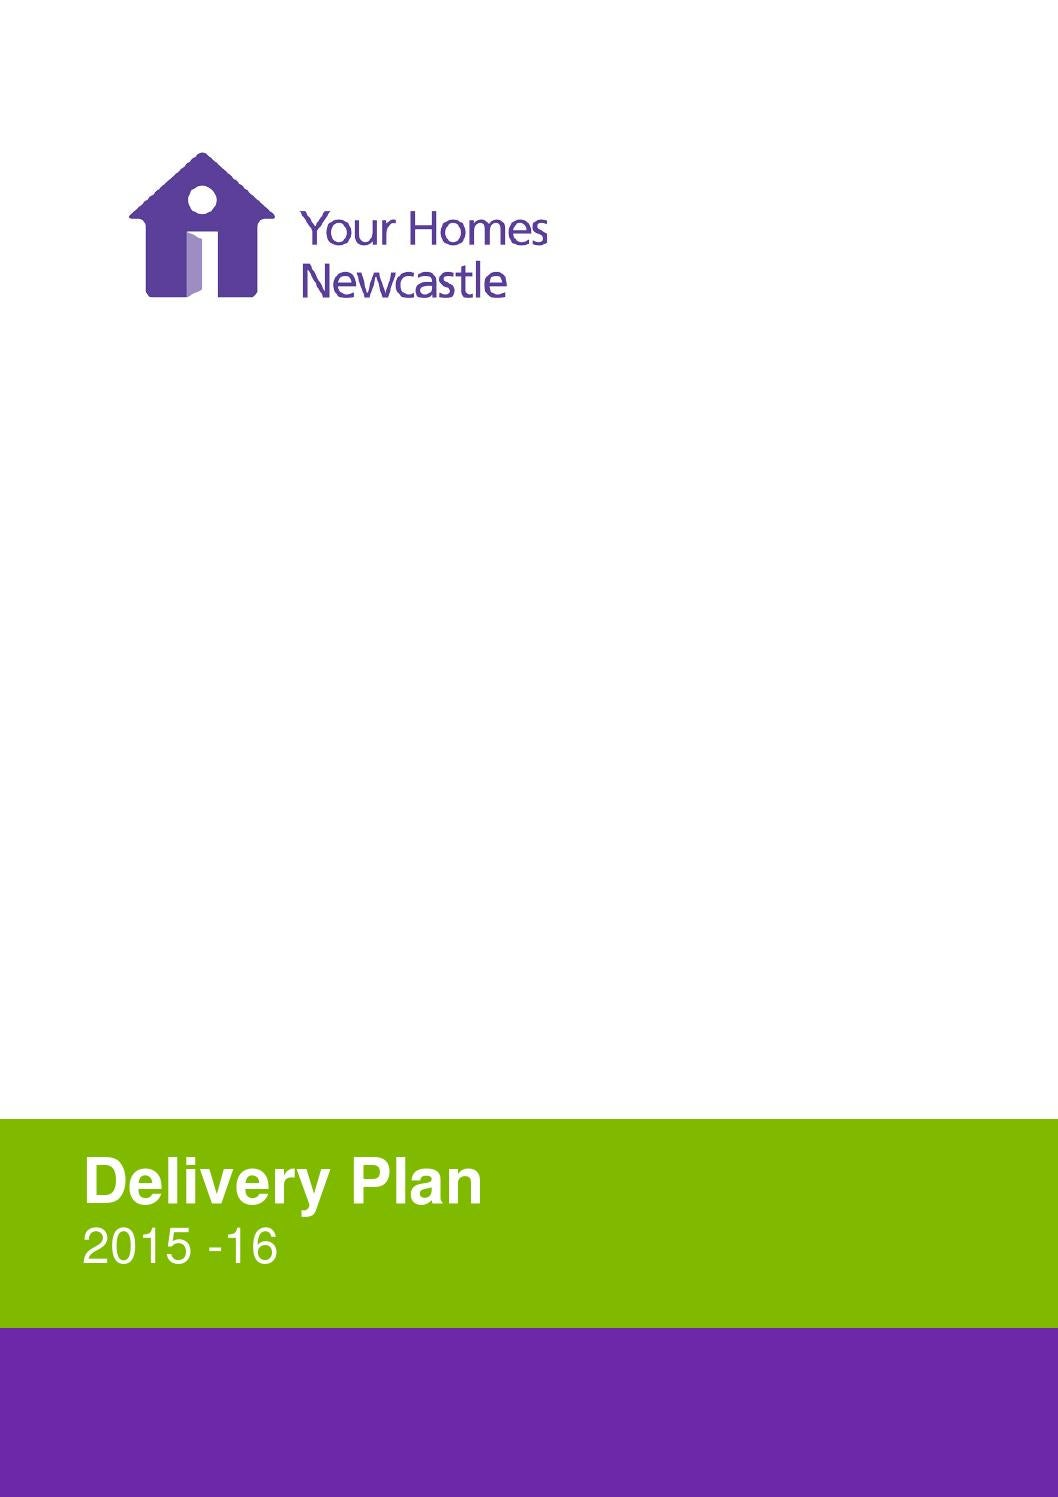 . Yhn delivery plan 201516 by Your Homes Newcastle   issuu